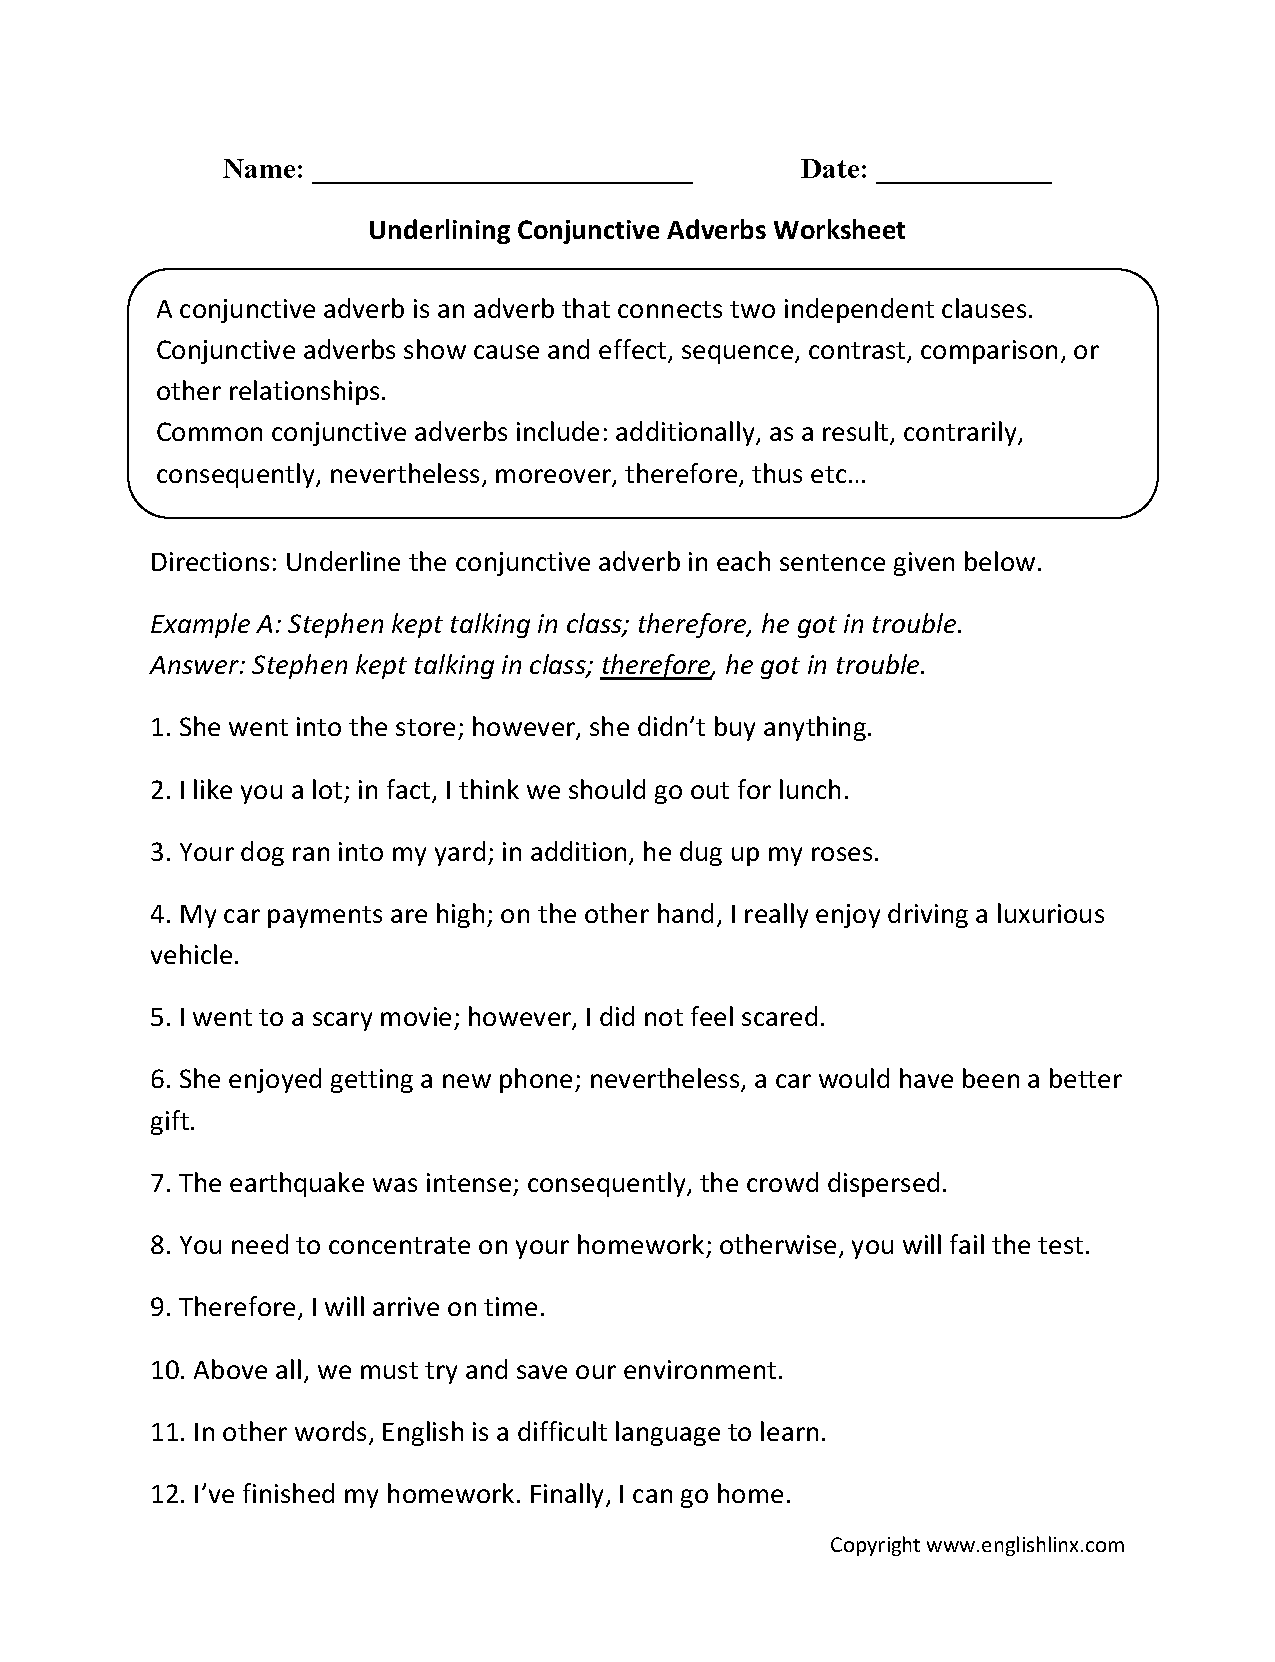 Aldiablosus  Scenic Englishlinxcom  Conjunctions Worksheets With Excellent Worksheet With Endearing Input And Output Worksheets Also Human Body Worksheets For Kids In Addition Map Legend Worksheet And Printable Kids Worksheets As Well As Free Printable Worksheets For Second Grade Additionally Th Grade Word Problems Worksheets From Englishlinxcom With Aldiablosus  Excellent Englishlinxcom  Conjunctions Worksheets With Endearing Worksheet And Scenic Input And Output Worksheets Also Human Body Worksheets For Kids In Addition Map Legend Worksheet From Englishlinxcom